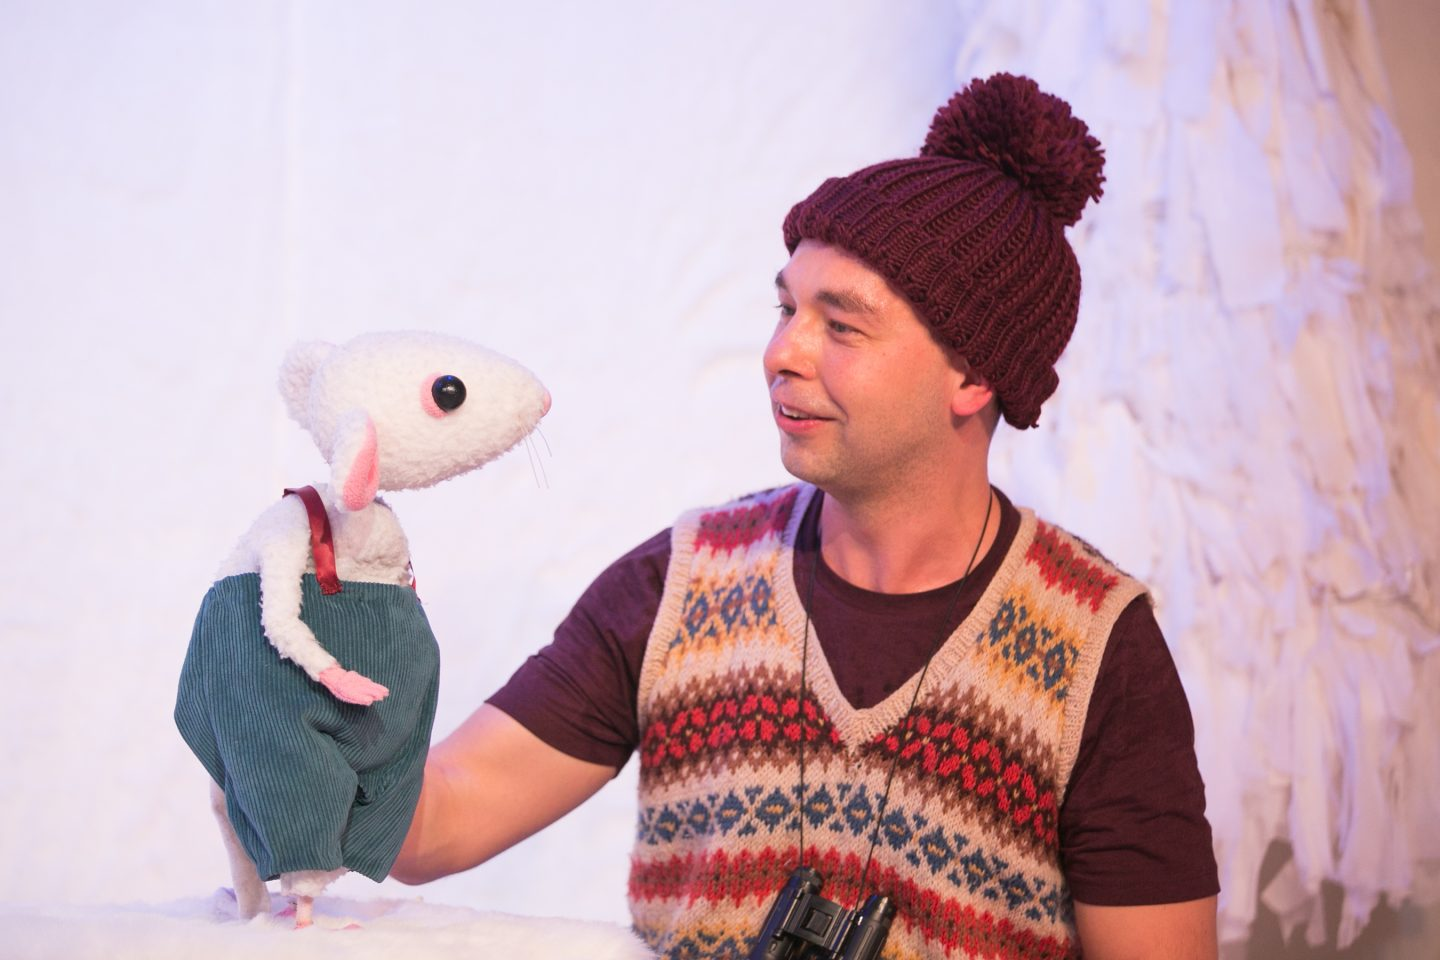 Snow Mouse and Performer on stage